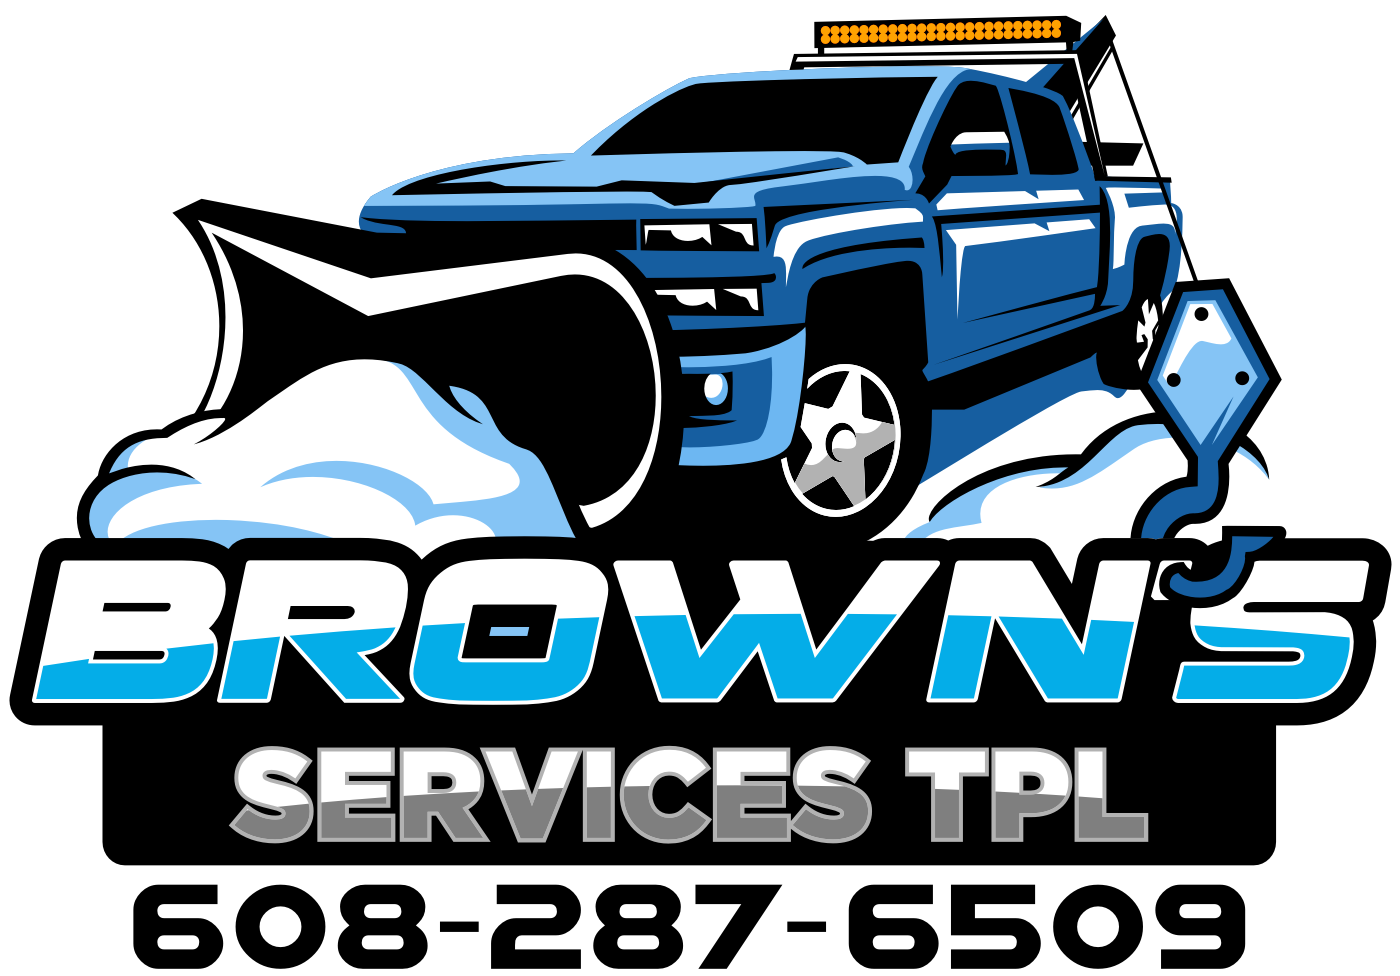 Brown's Services TPL needs a new, clean logo for future merchandising efforts